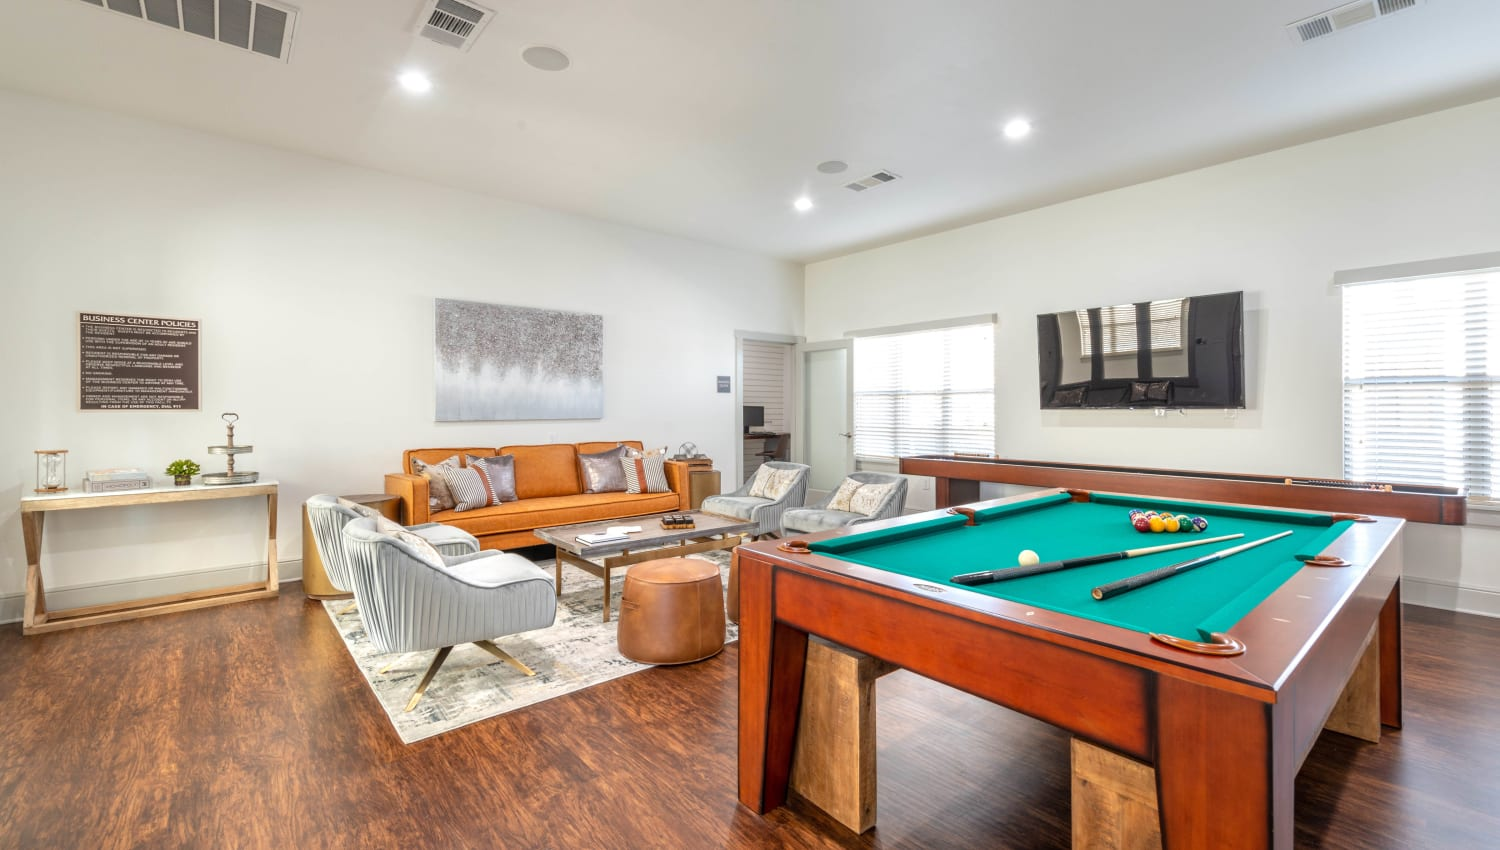 Billiards and more in the game room at Olympus Willow Park in Willow Park, Texas